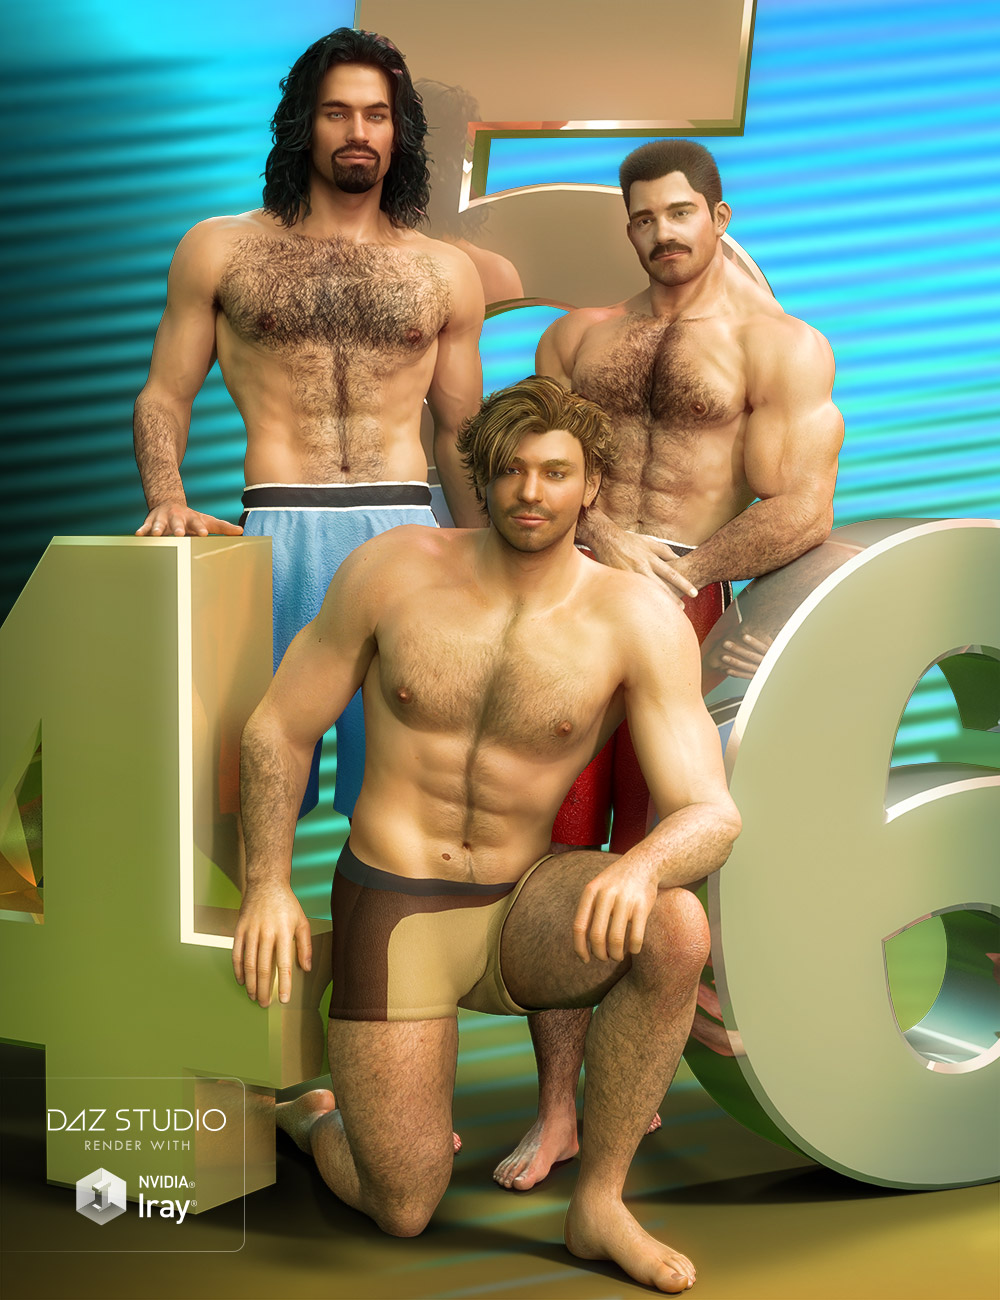 Project Hairy 456 for Daz Studio by: Jepe, 3D Models by Daz 3D